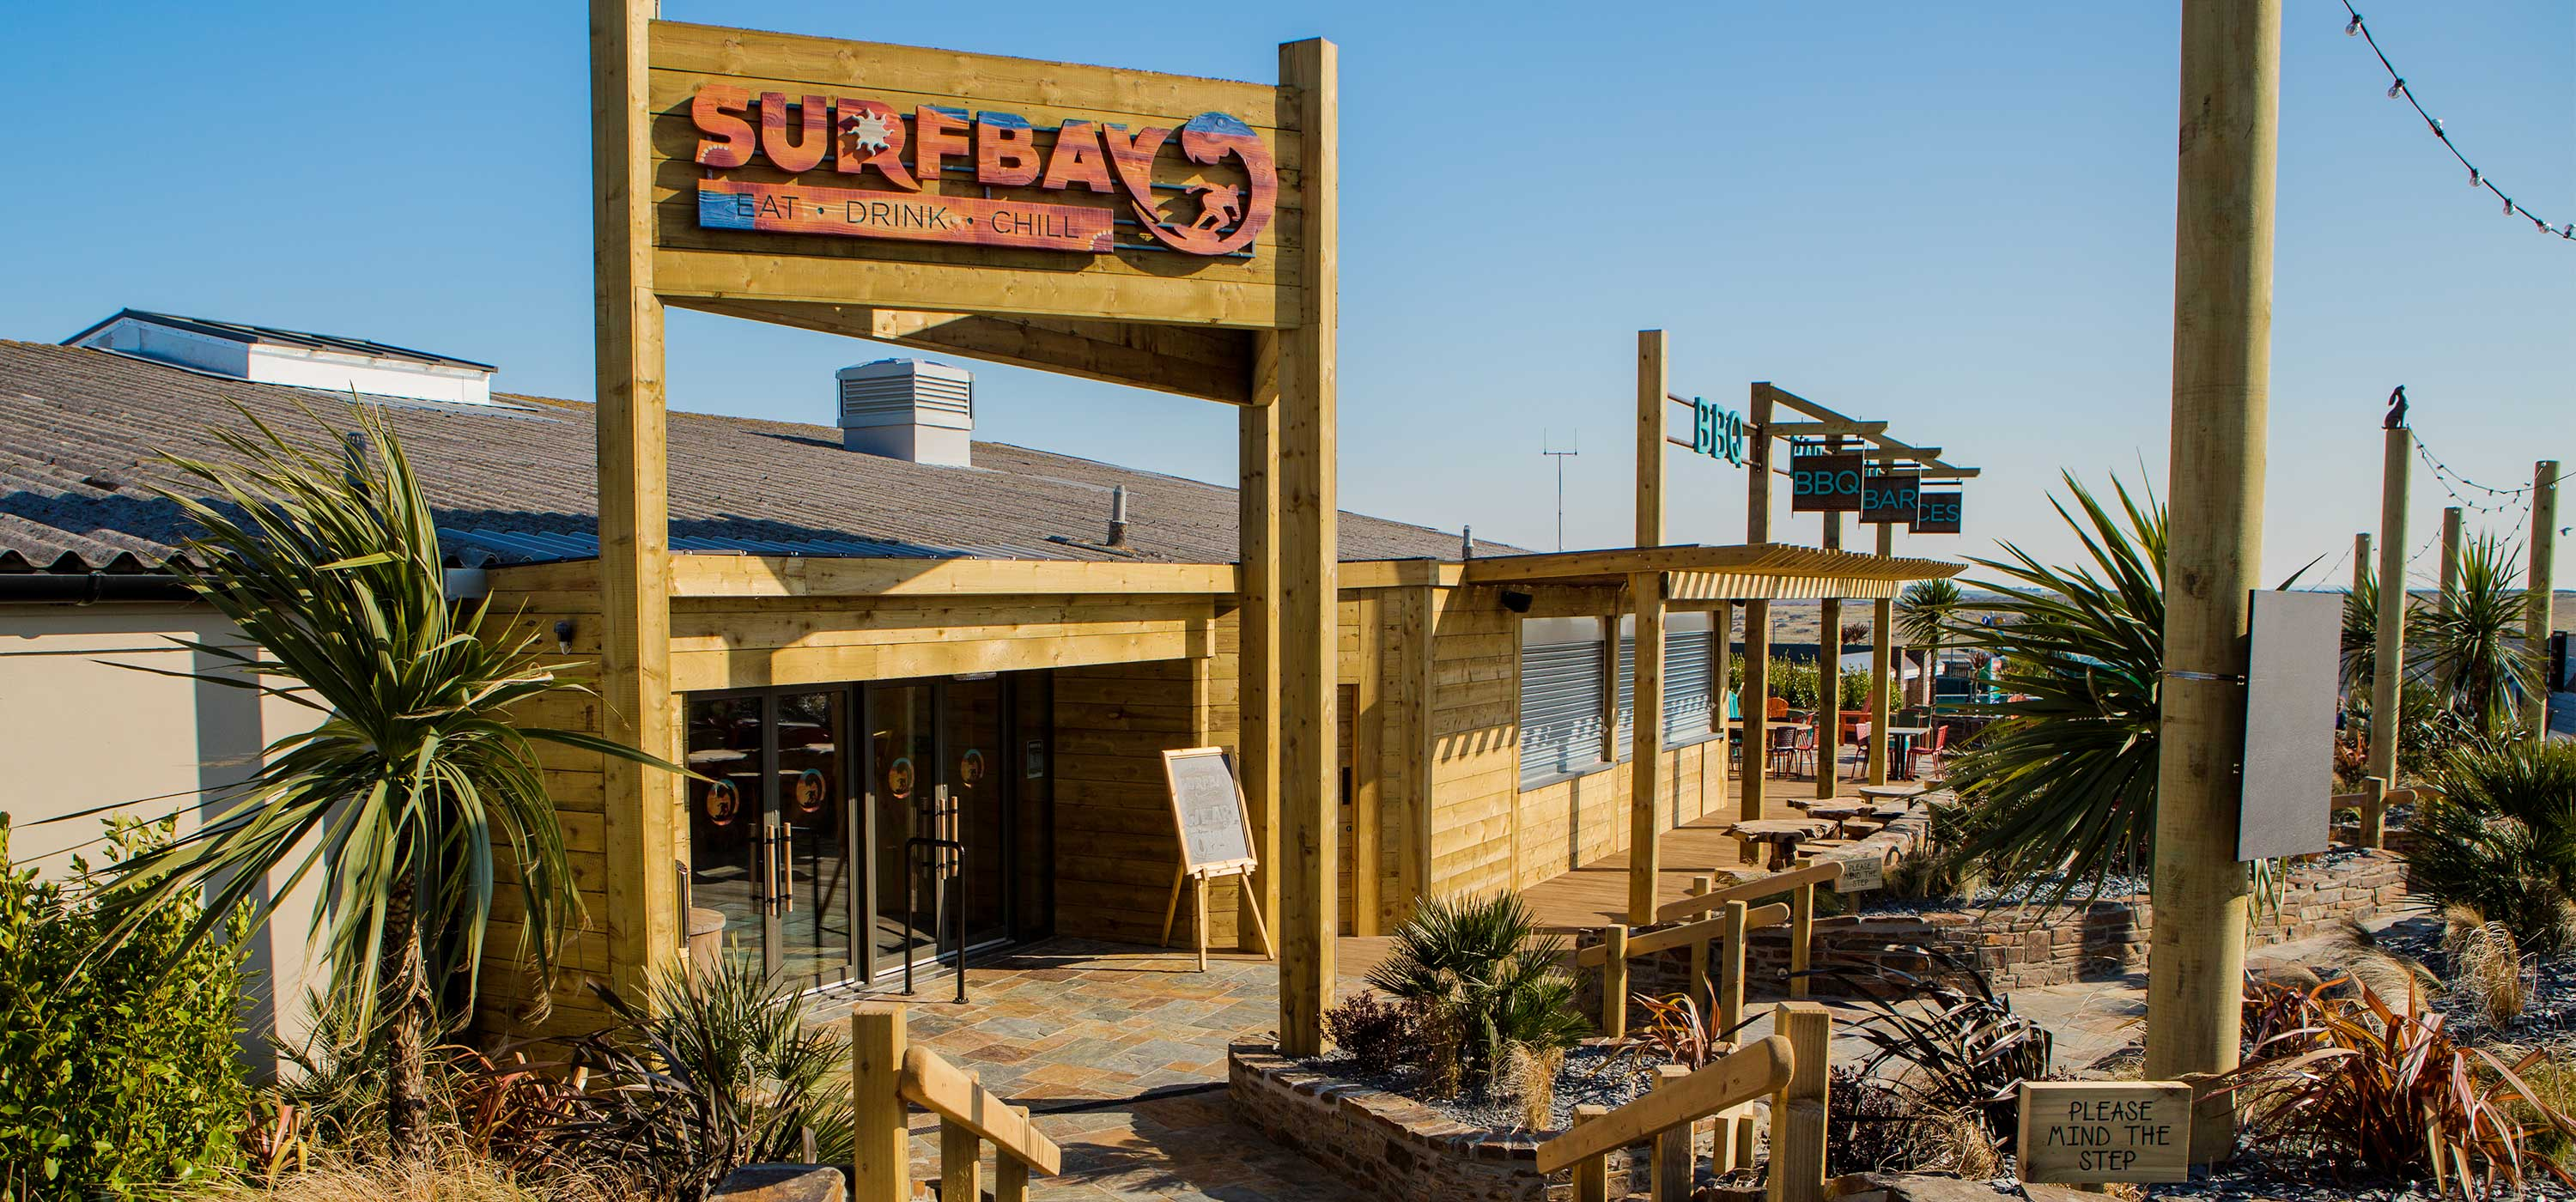 Exterior shot of Surfbay